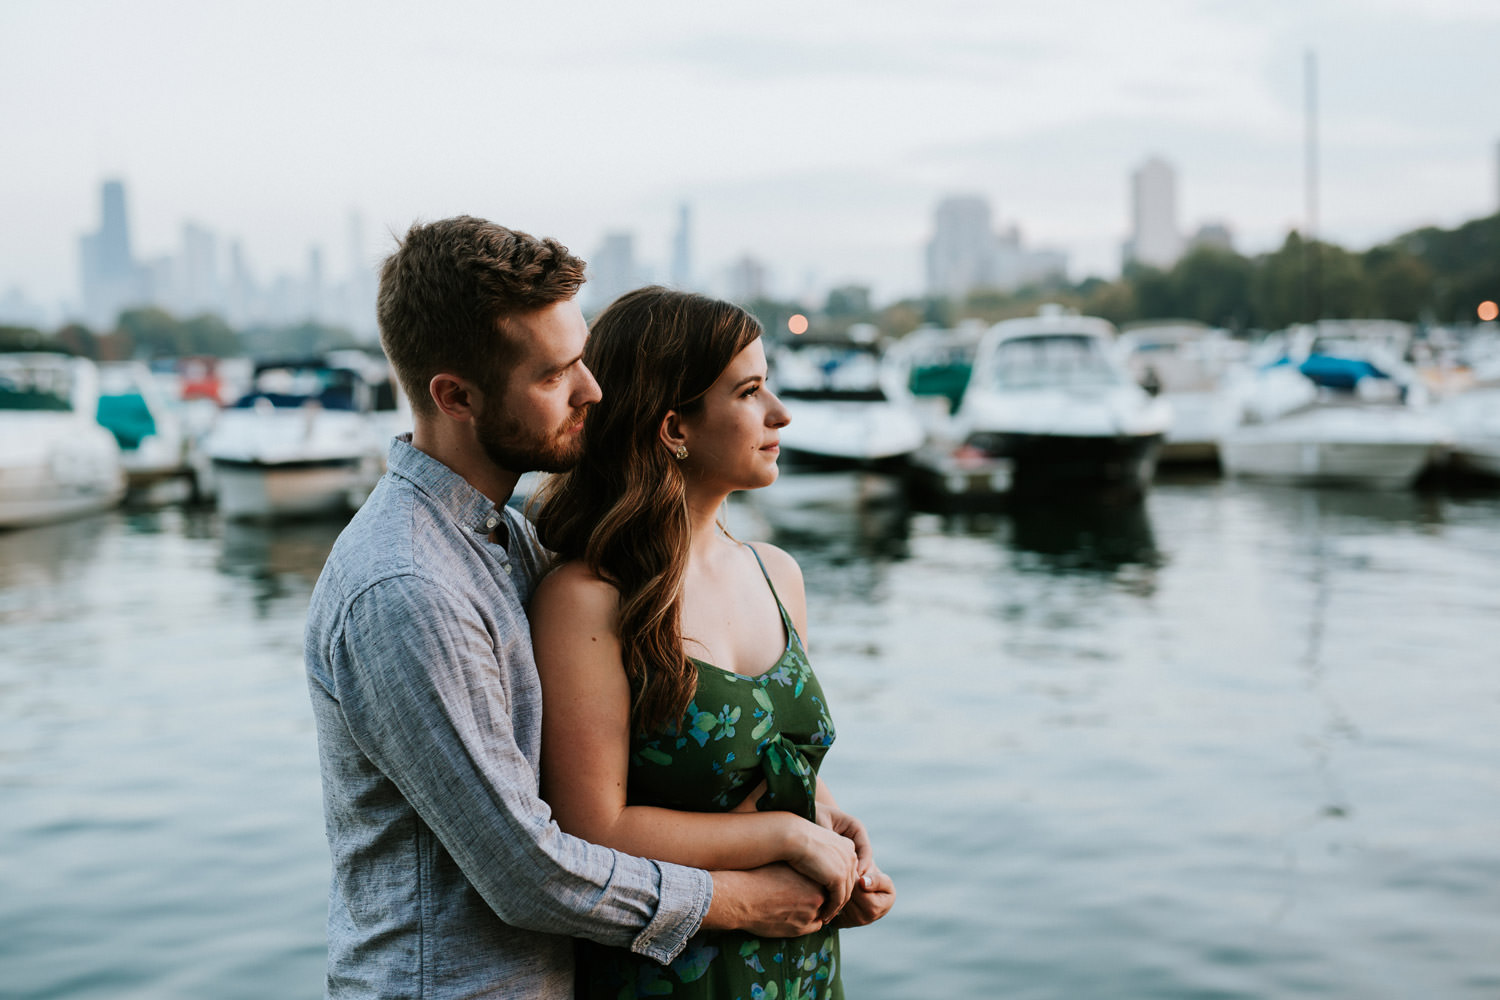 engagement portraits taken by lake michigan